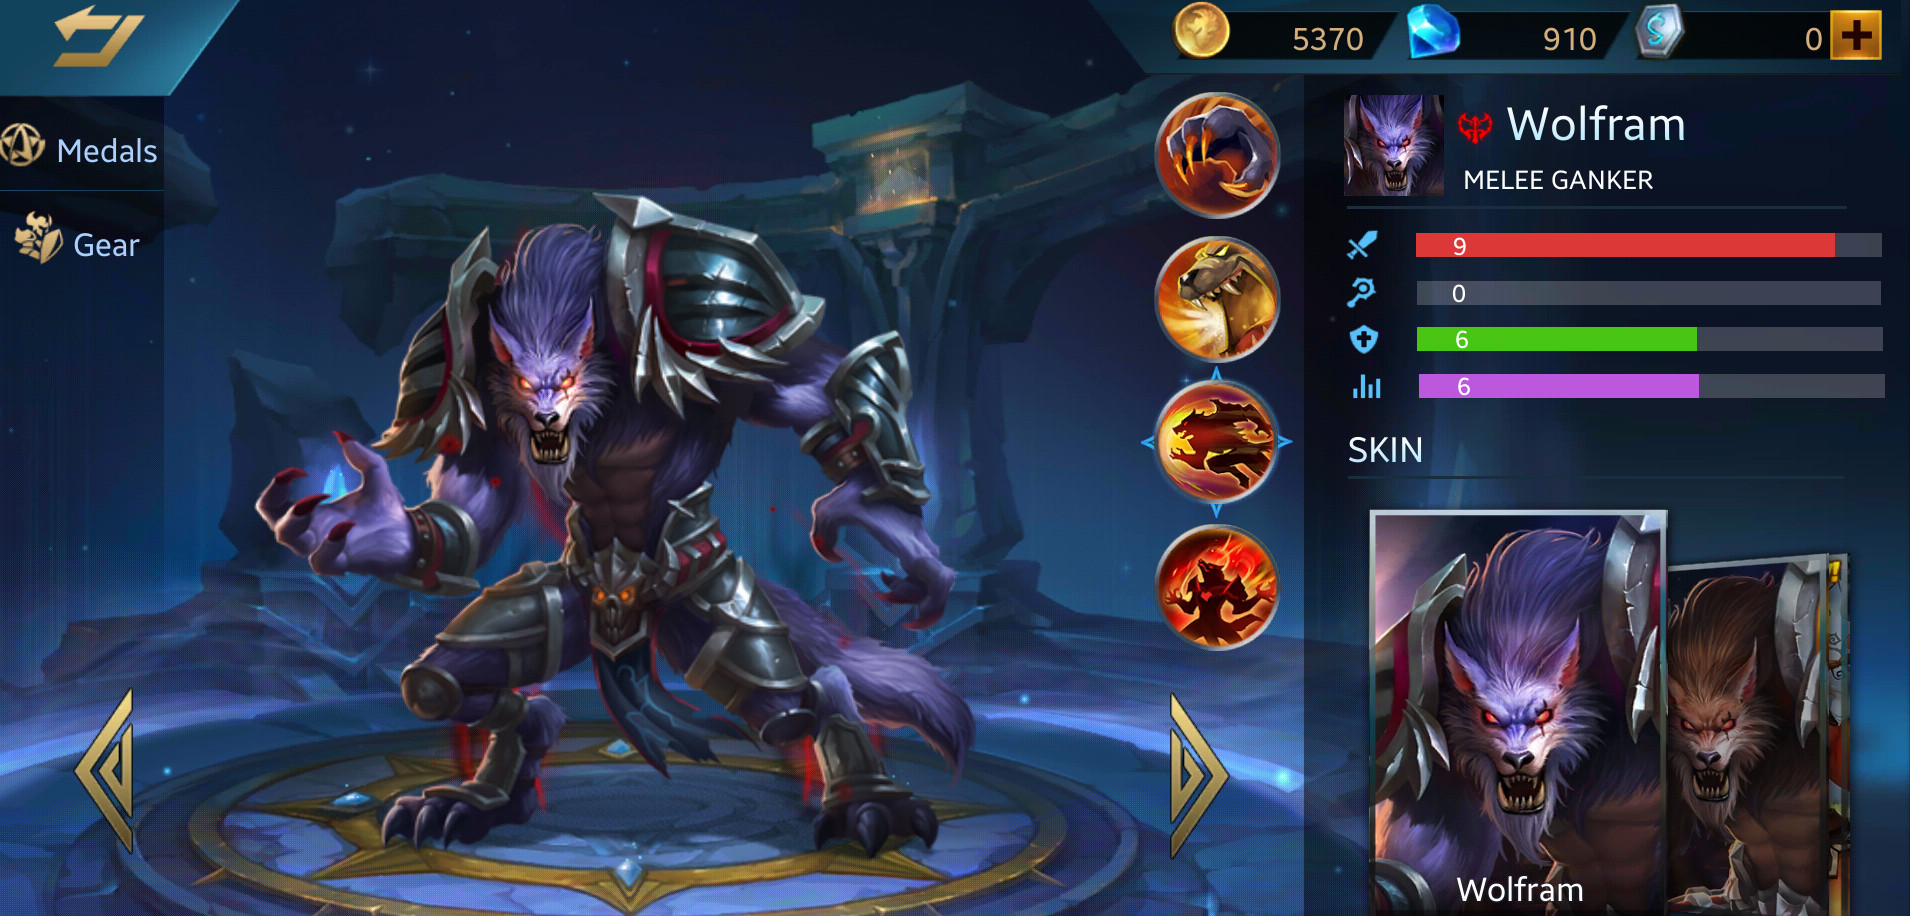 Photo of Heroes Evolved Wolfram Build Guide